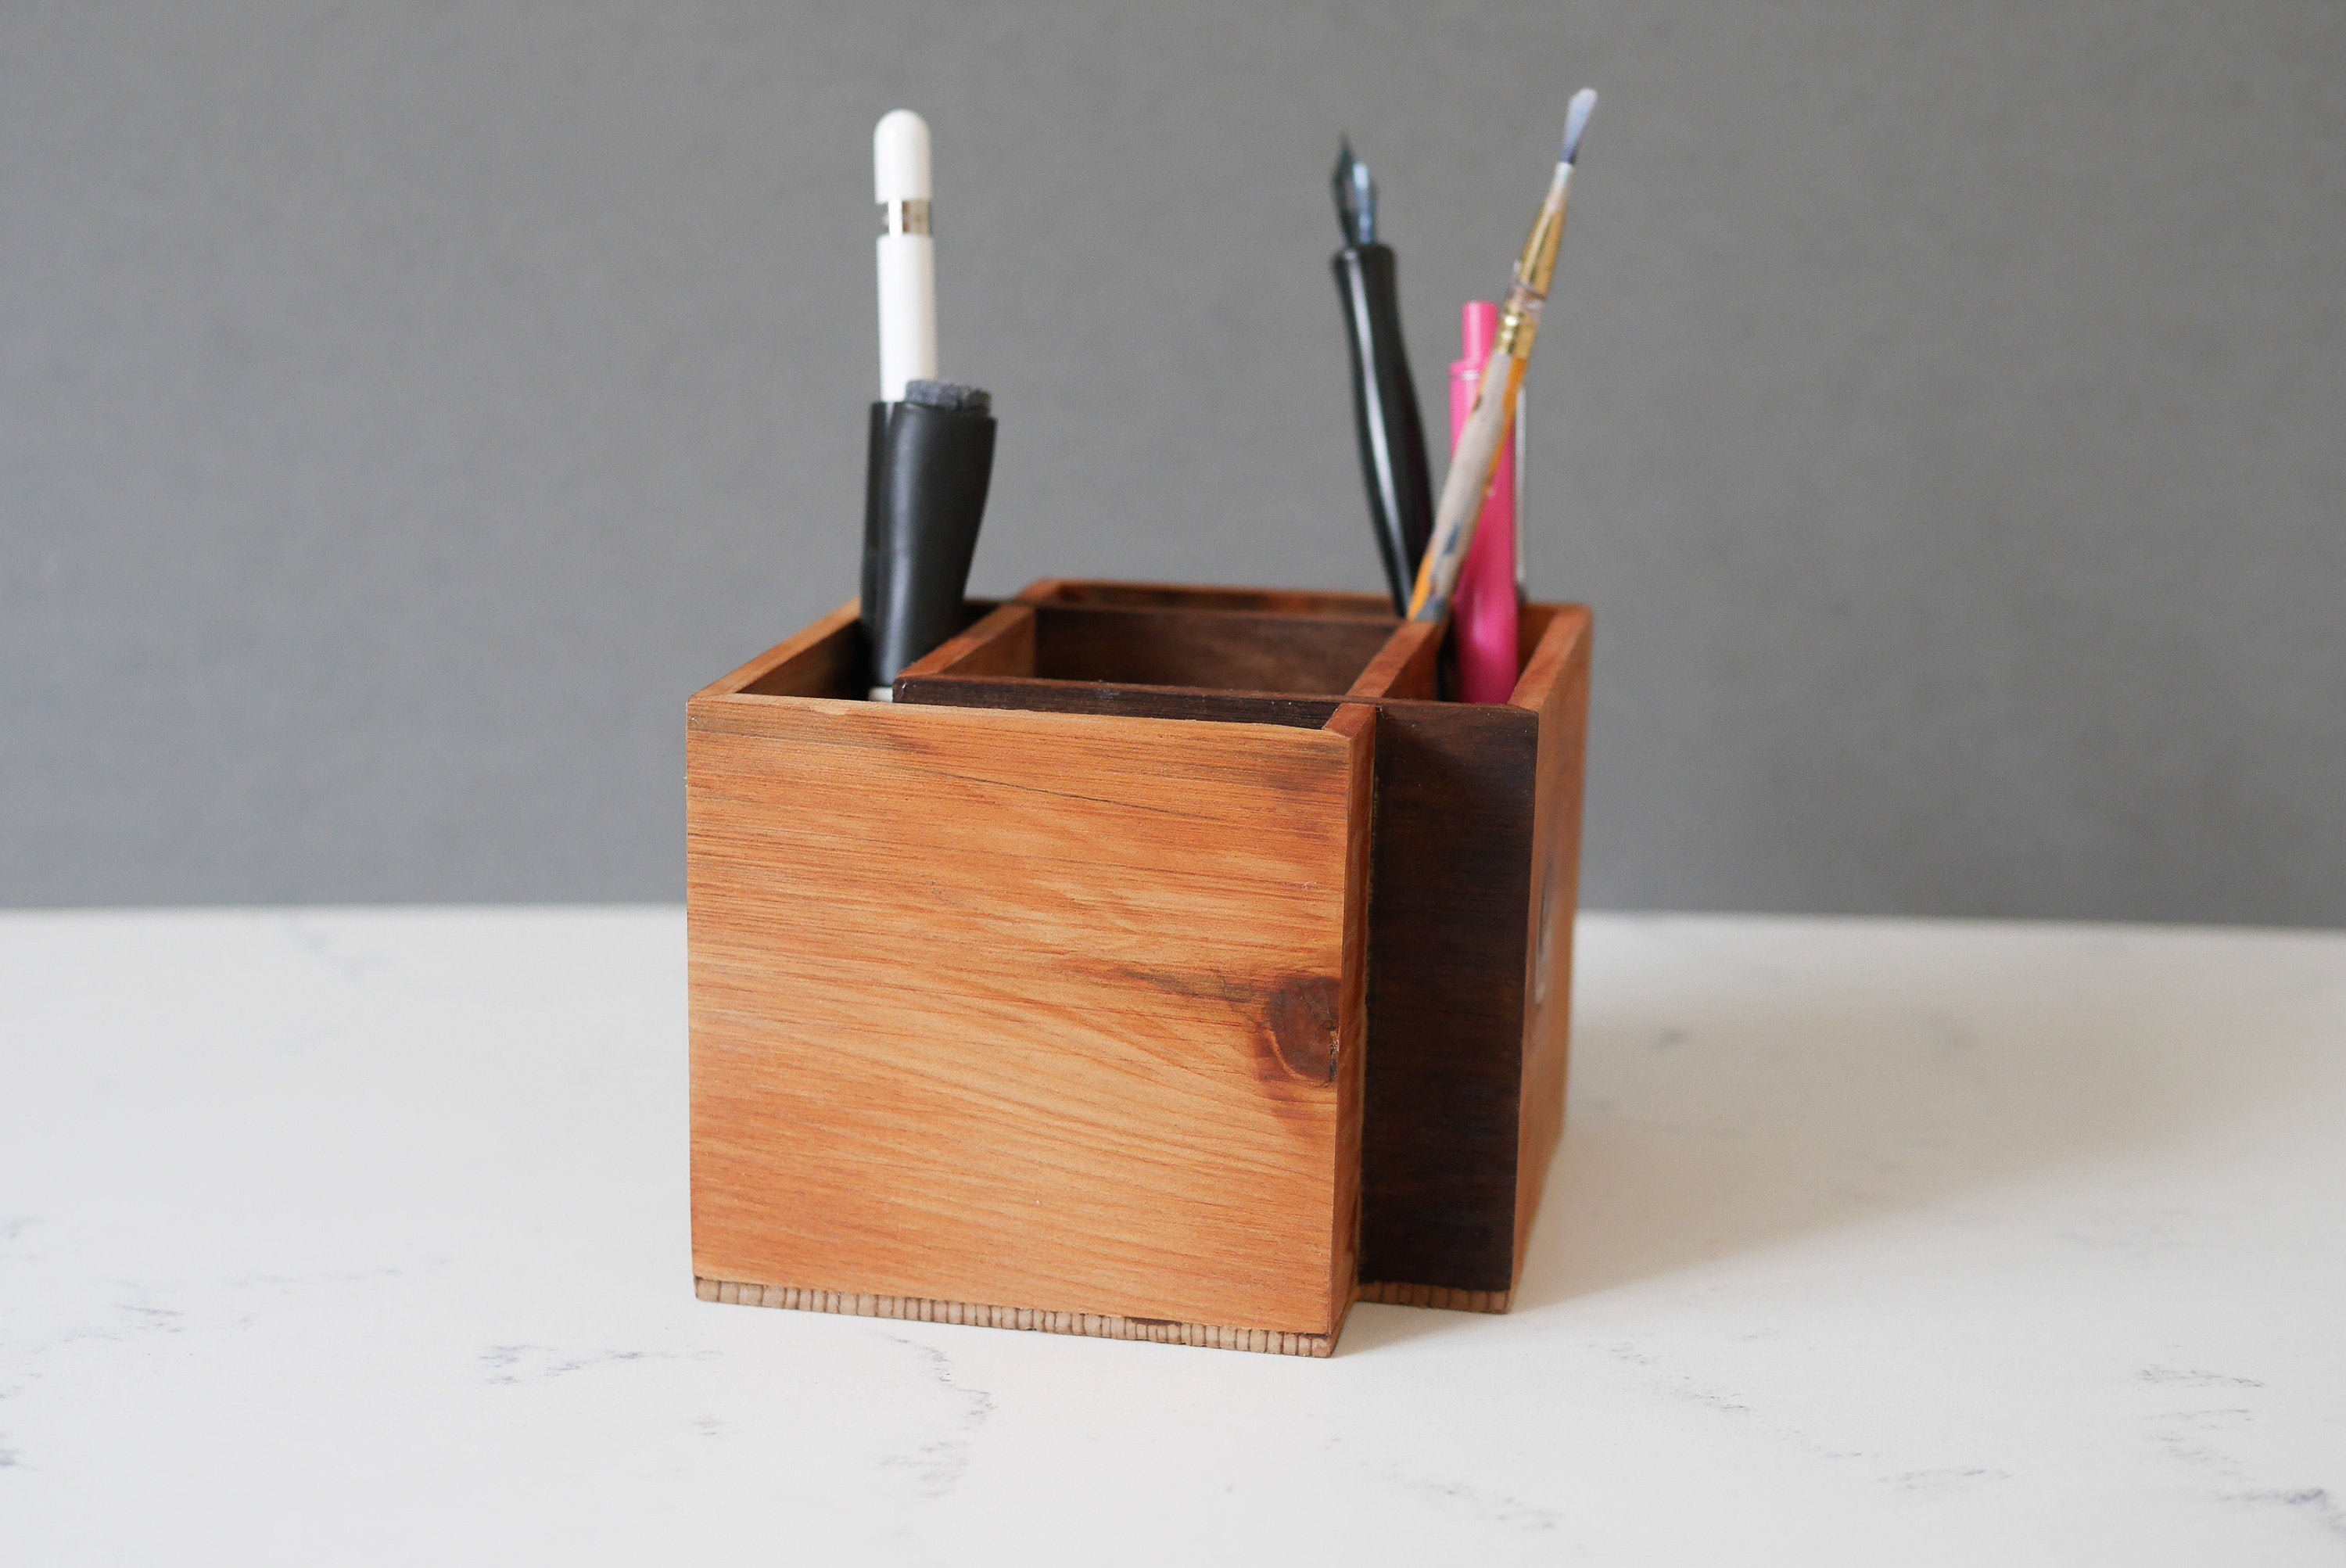 Pen Holder For Desk - Pencil Holder & Planter